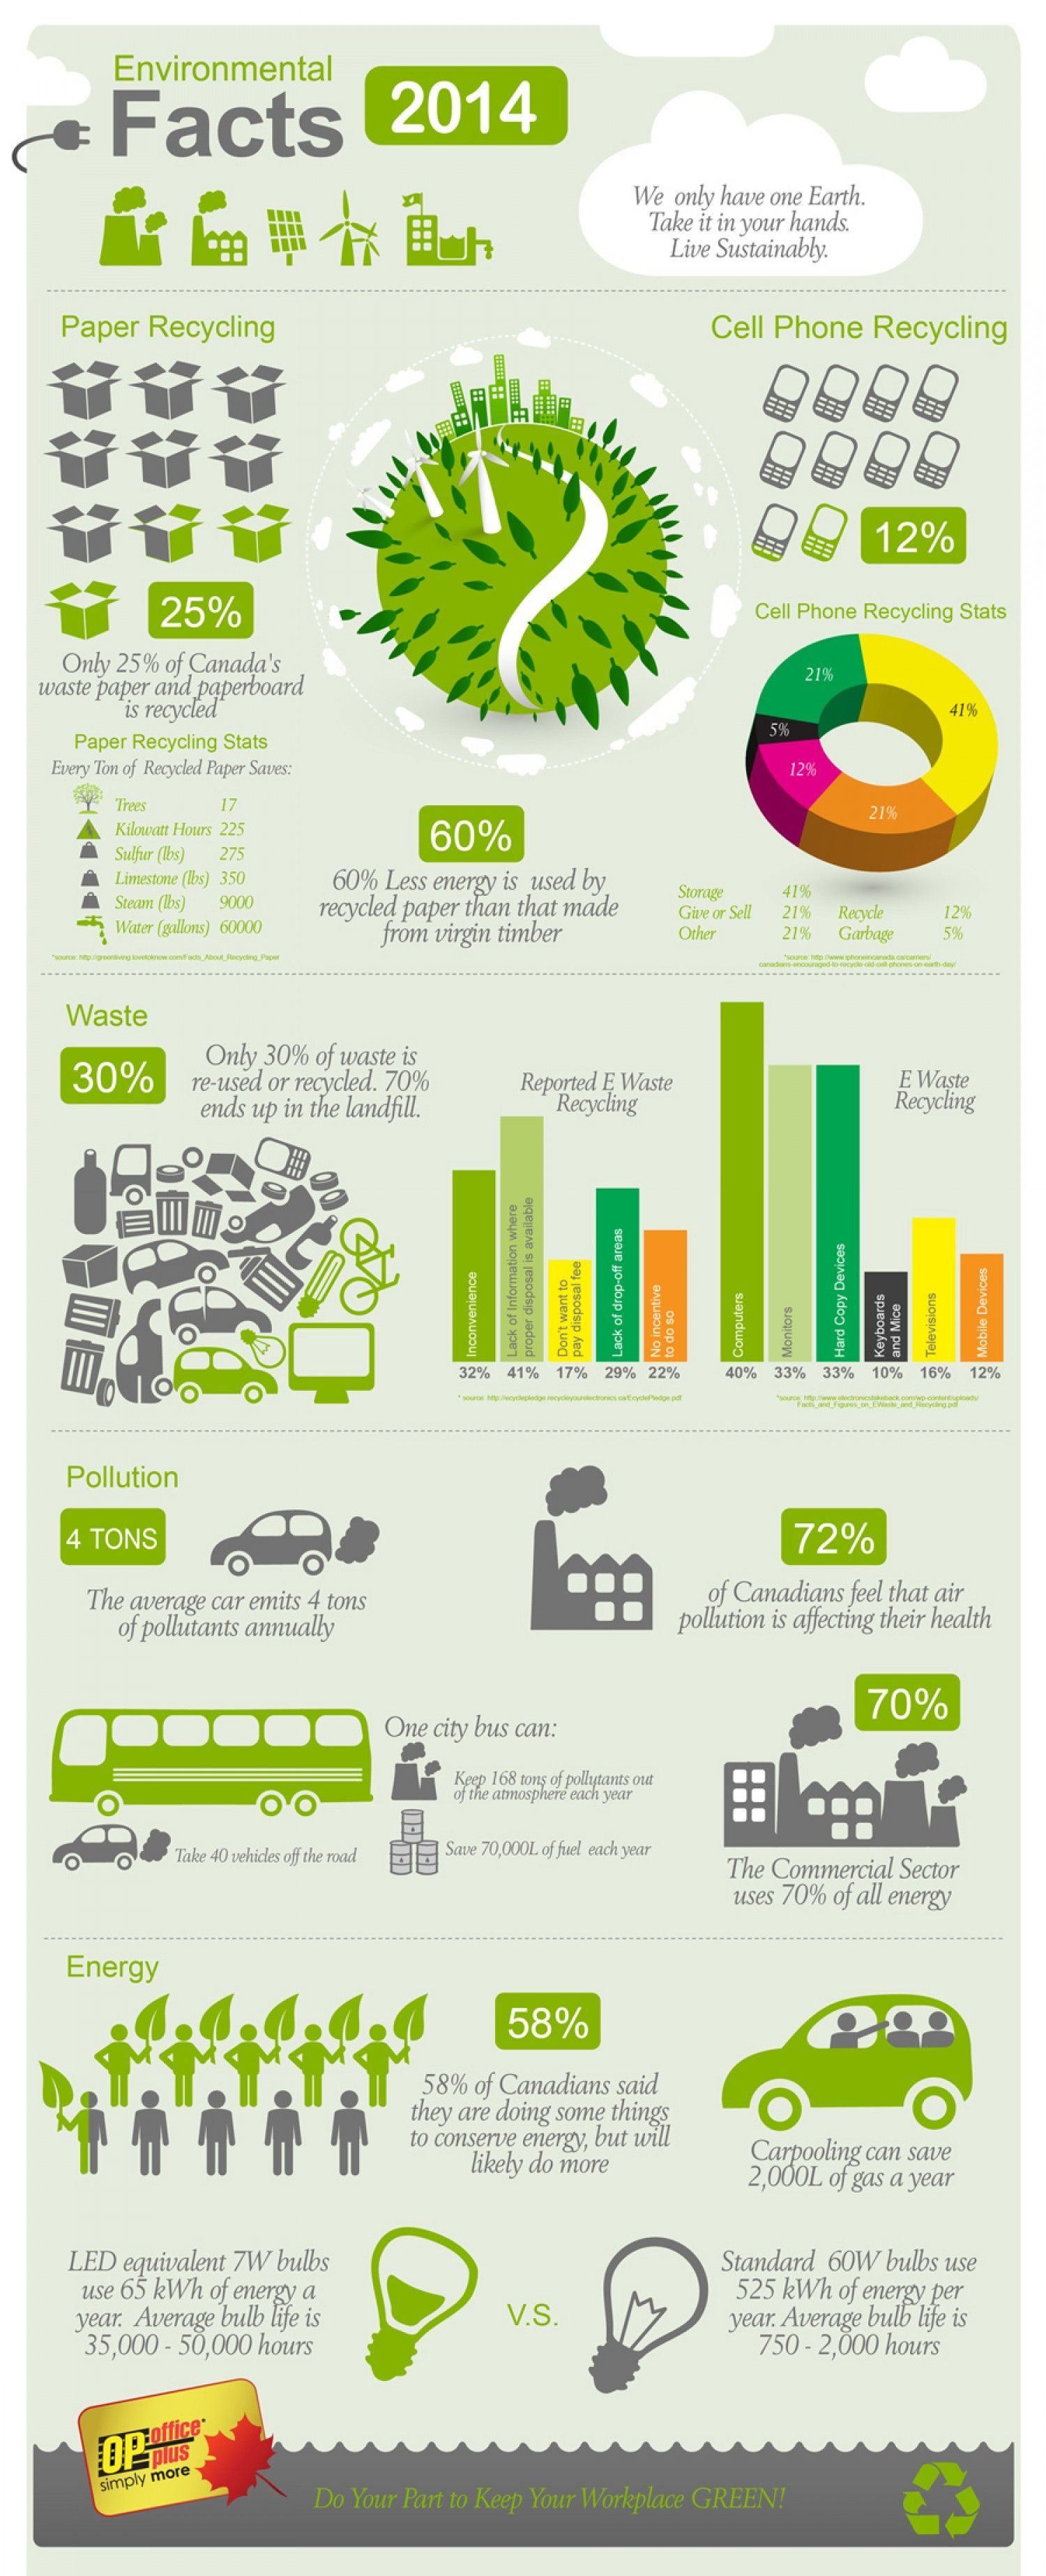 Earth Day Facts Infographic Pintowin Earthday Pin